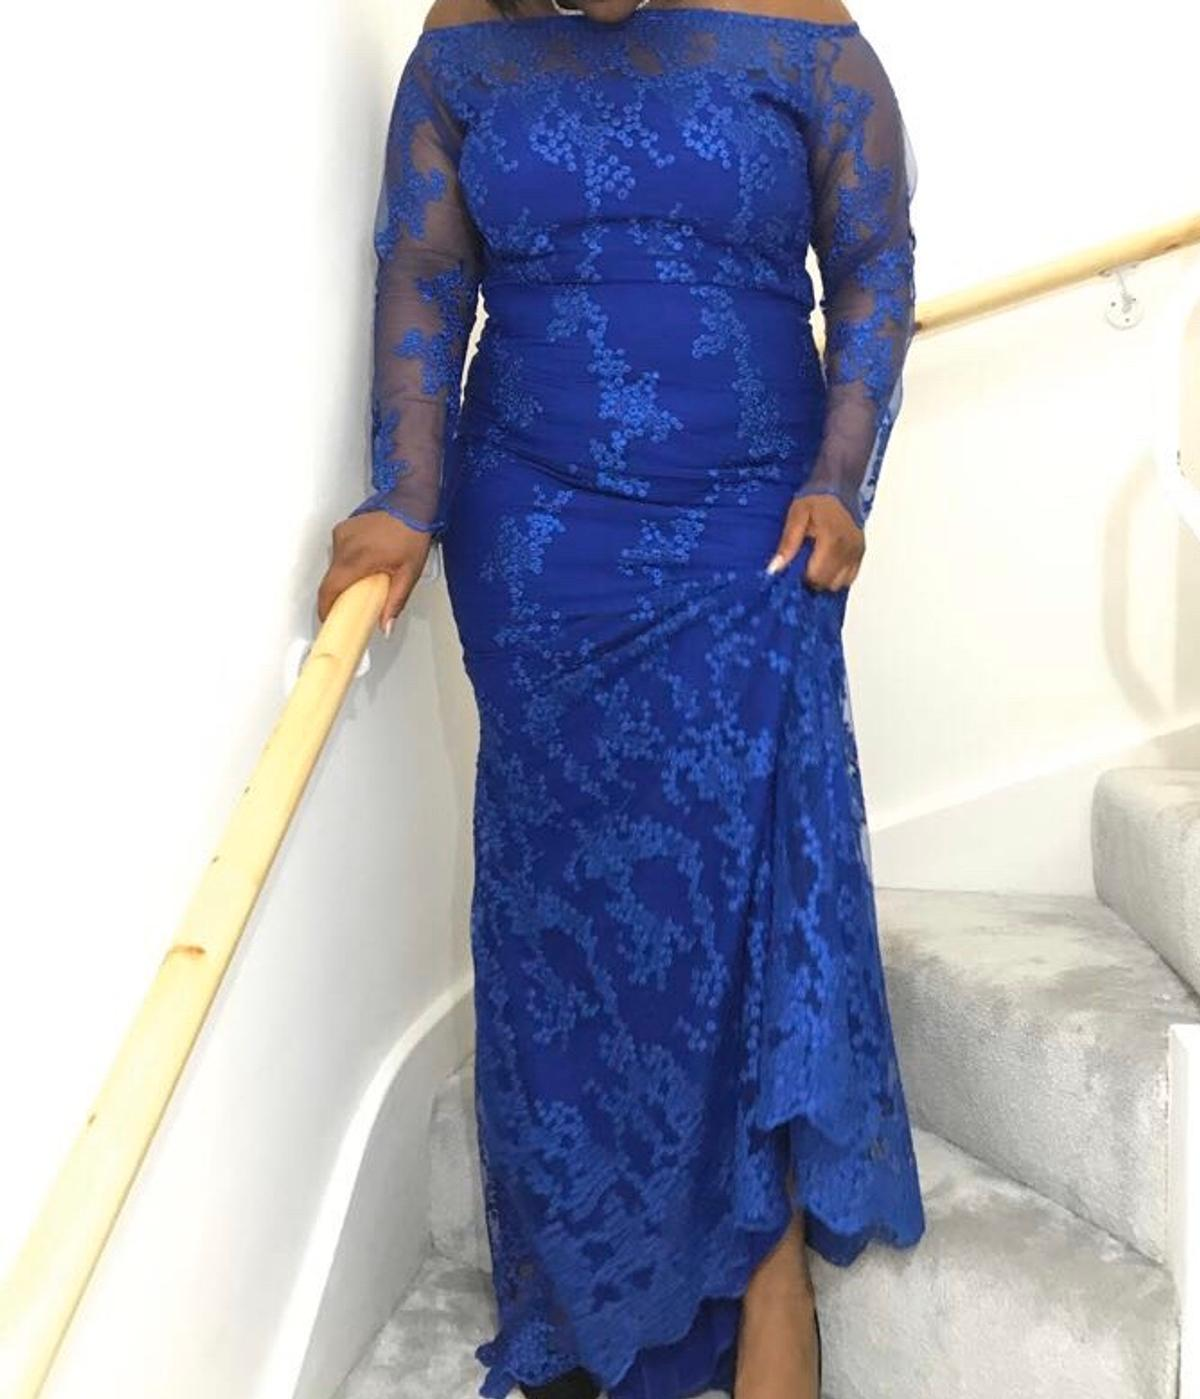 Professionally Made Royal Blue Lace Dress In Cr0 London For 250 00 For Sale Shpock